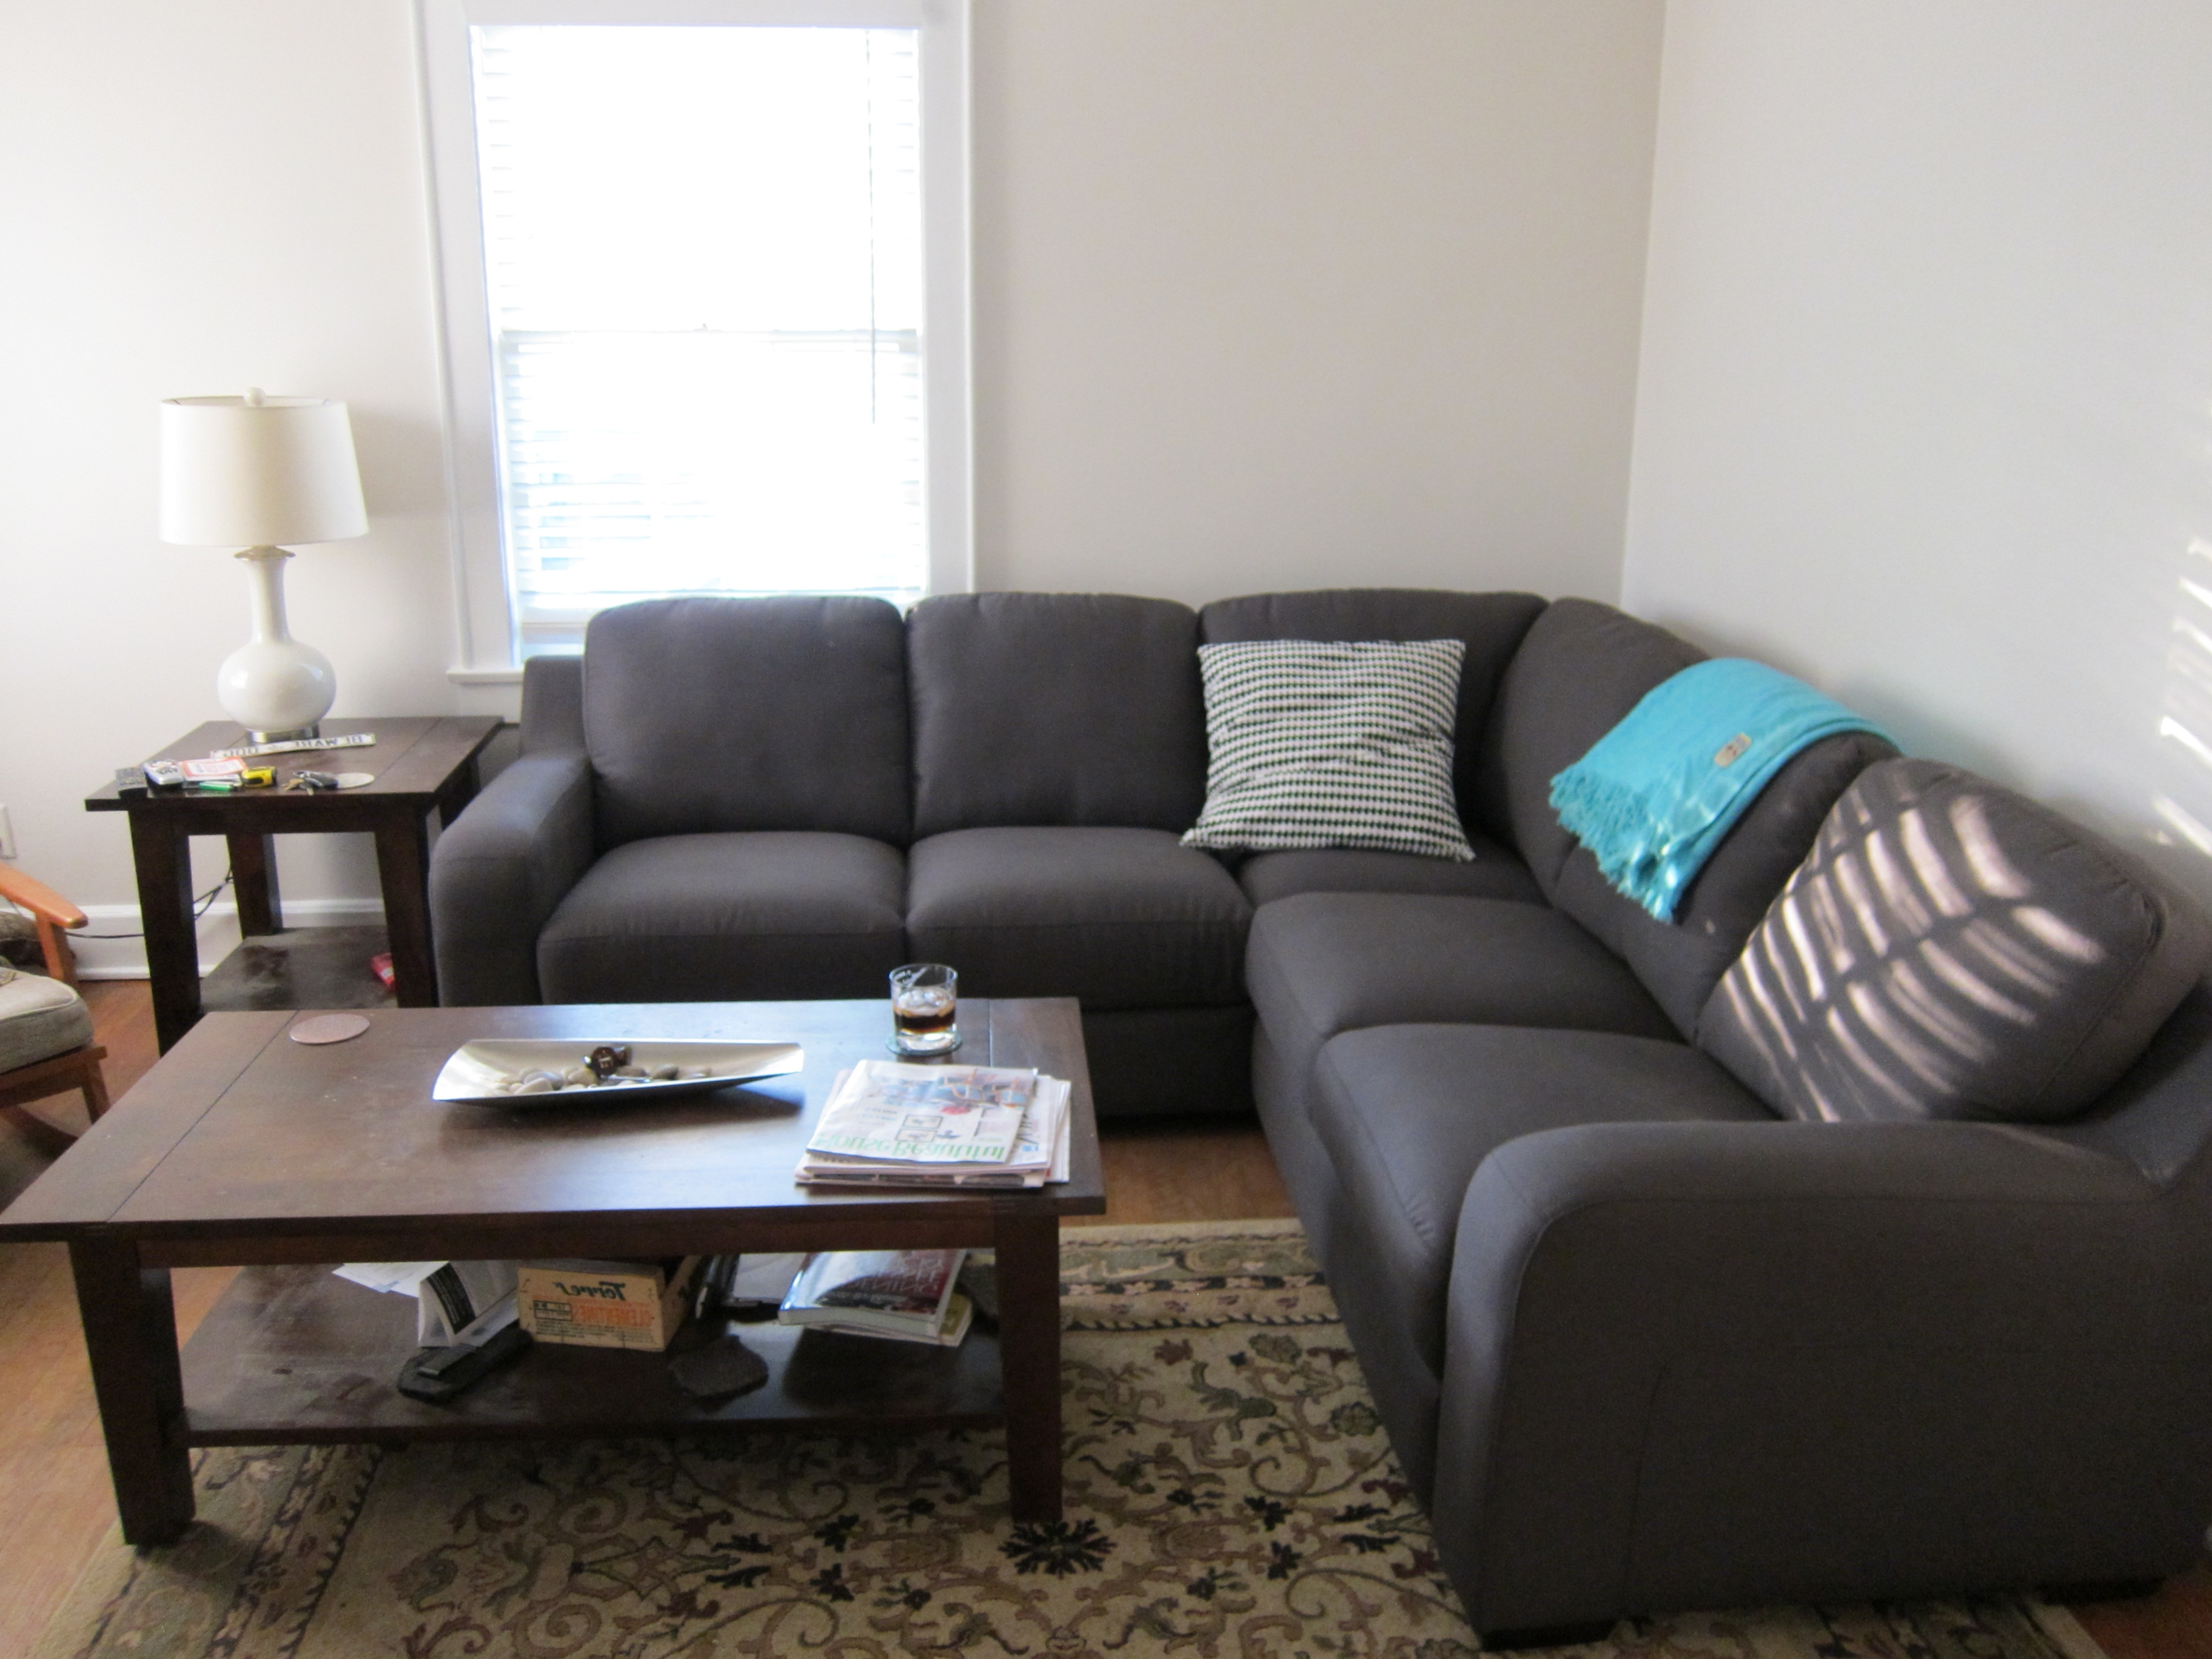 Coffee Tables For Sectional Sofa With Chaise In Latest Best Coffee Table For Sectional With Chaise – Laphotos (View 2 of 15)